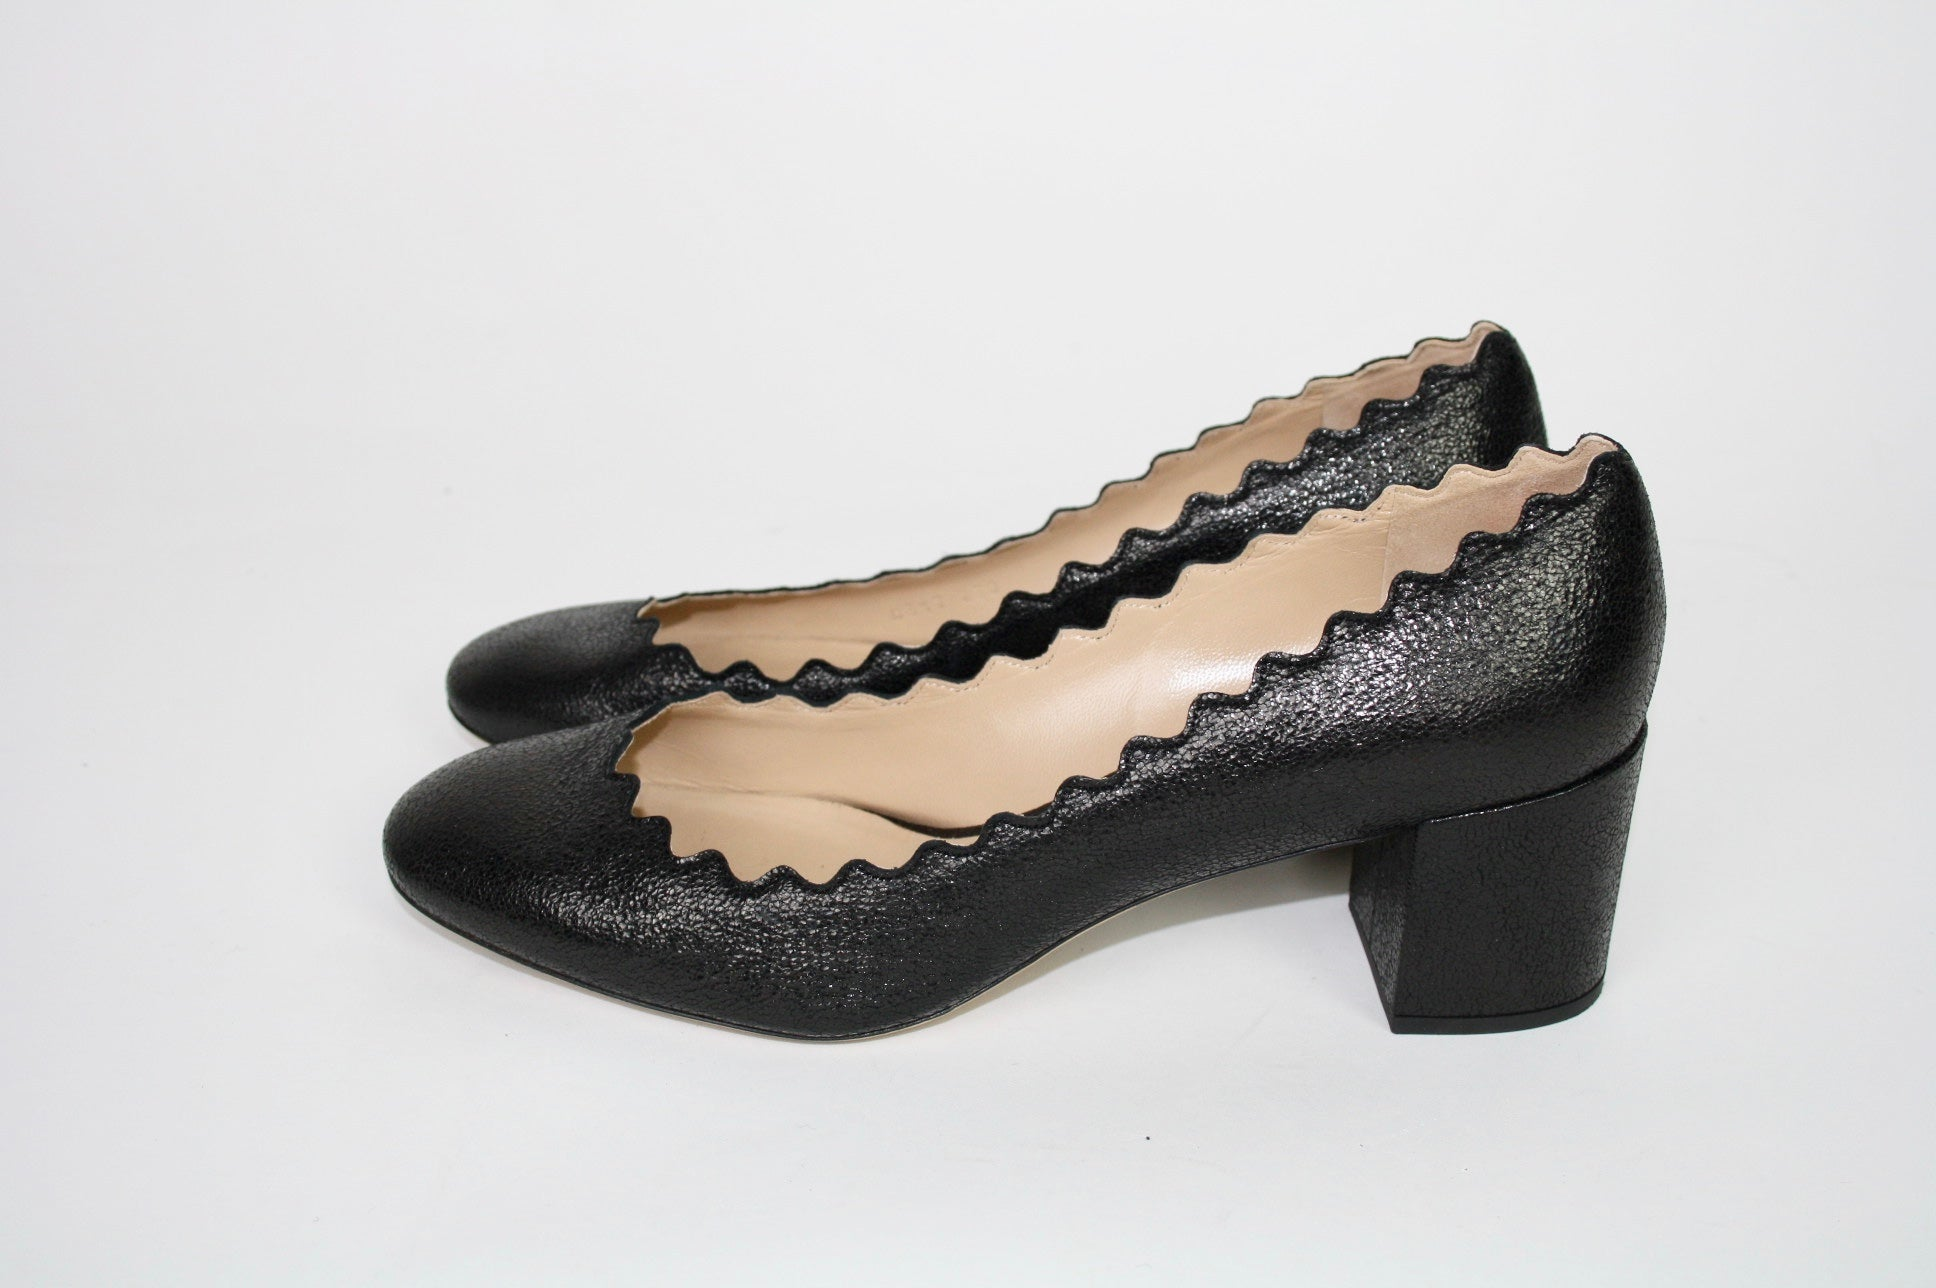 Chloé Pumps 39,5 - Iconics Preloved Luxury